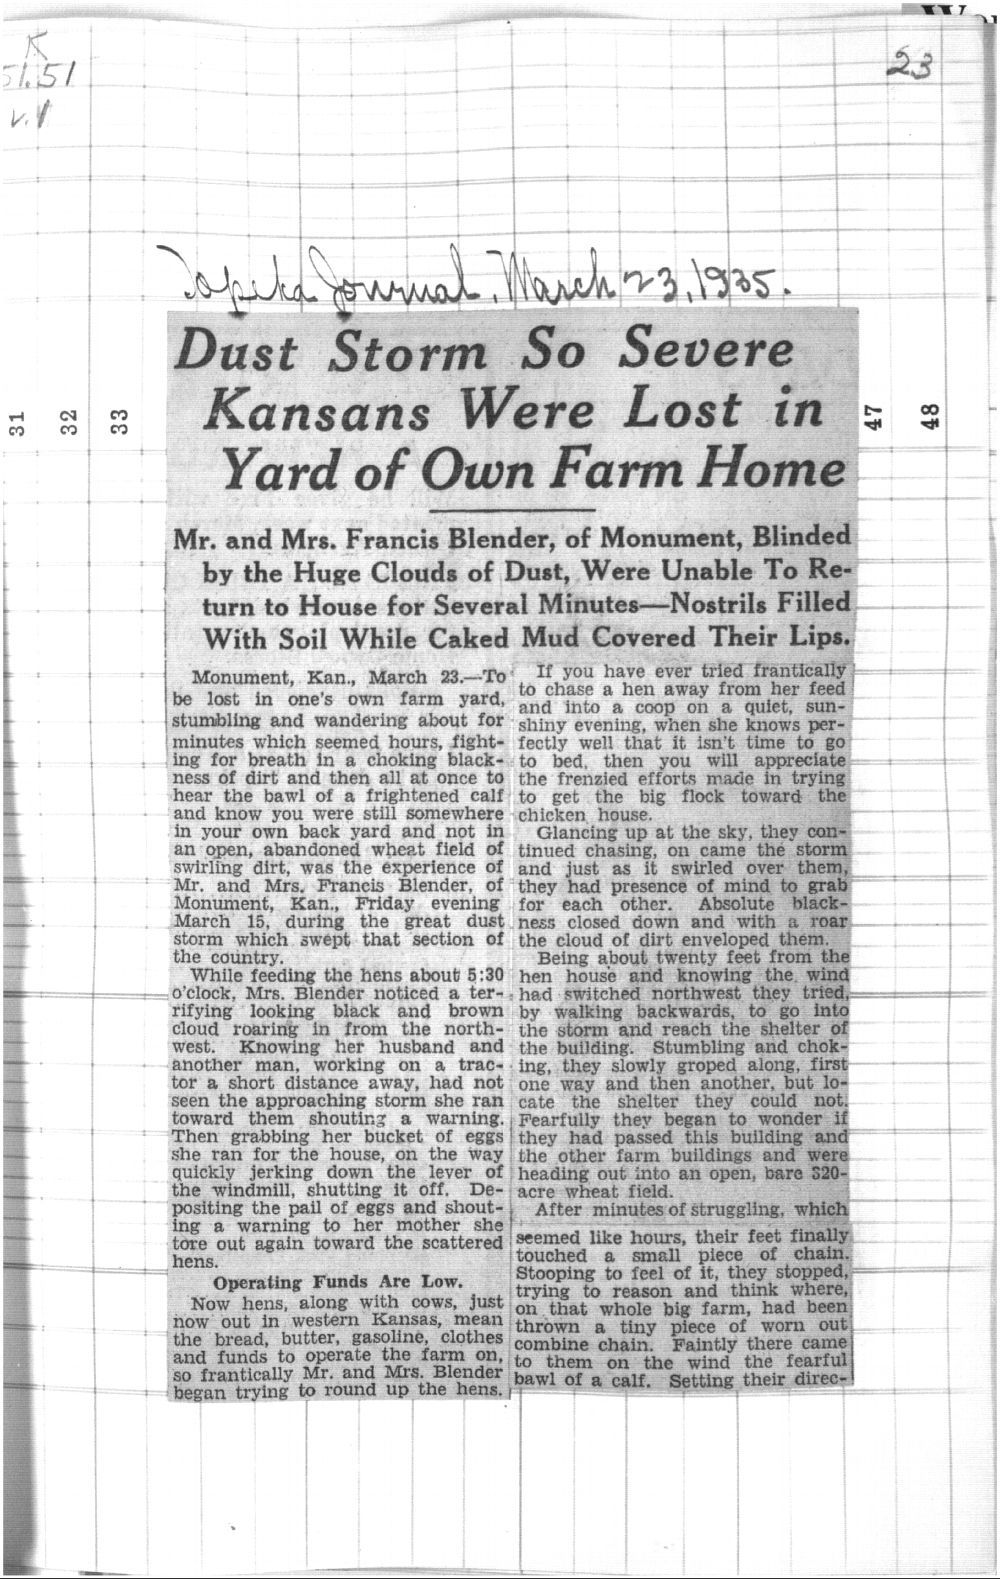 Dust storm so severe Kansans were lost in yard of own farm home - 23